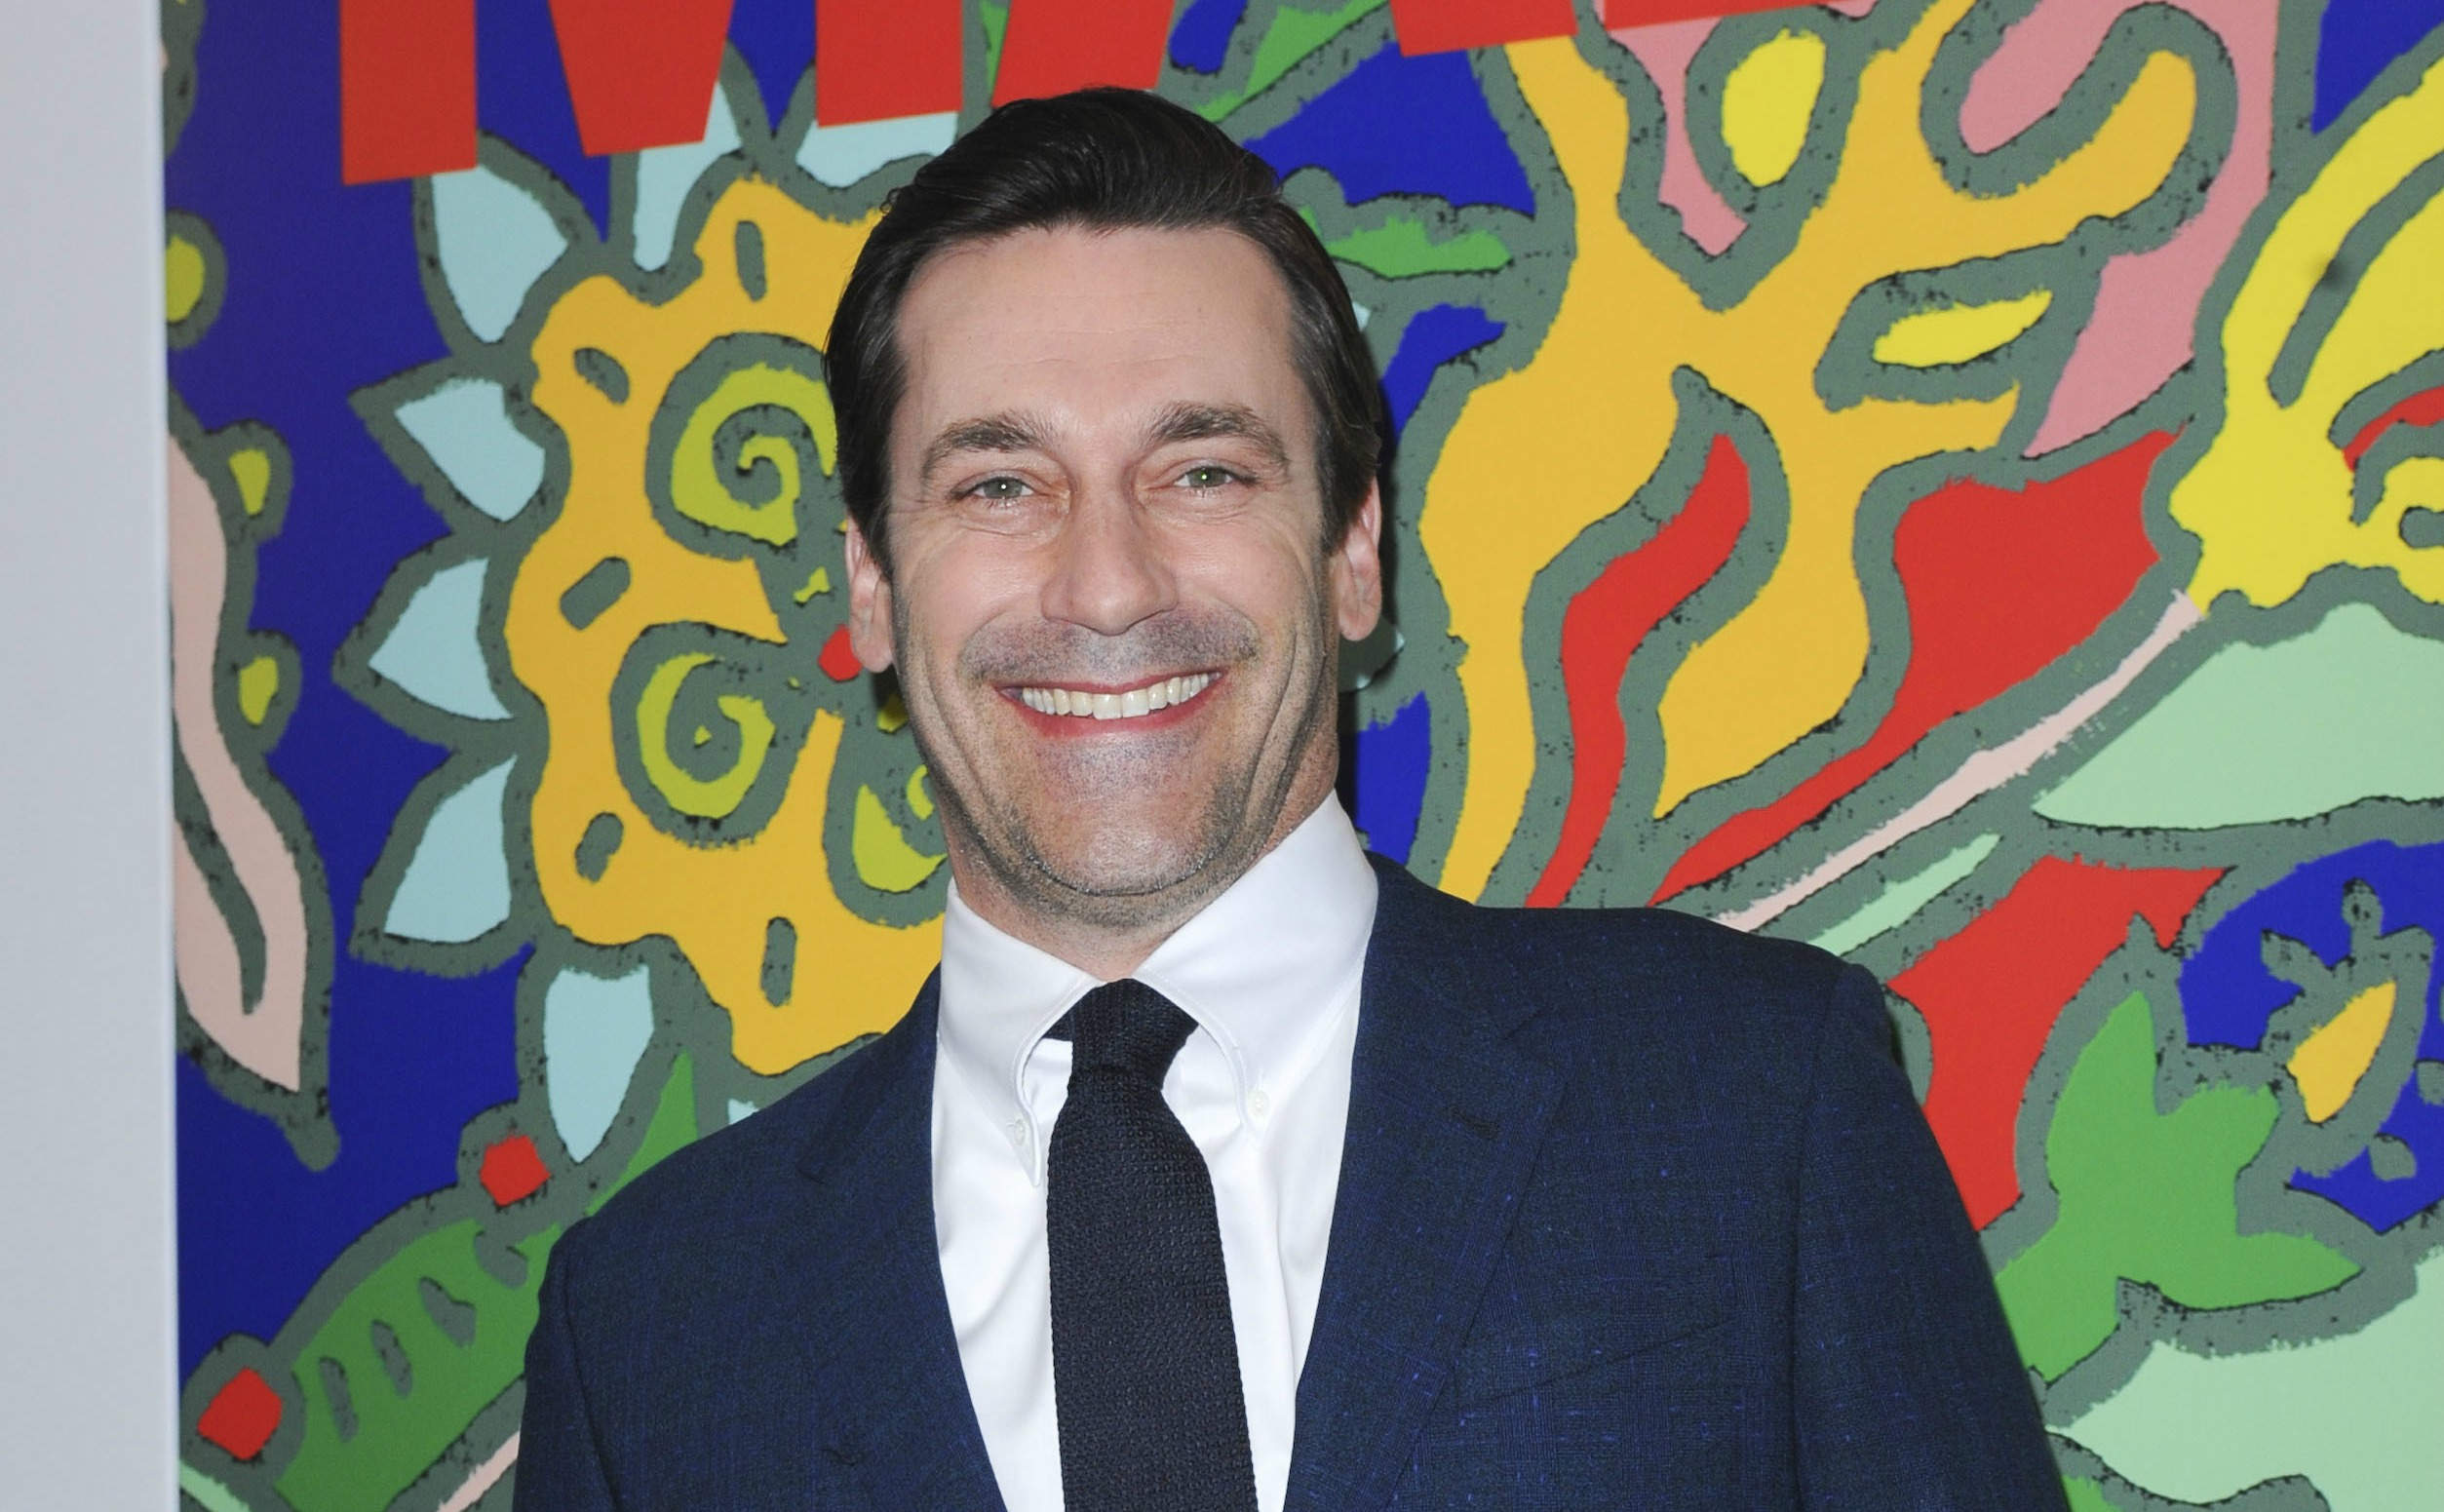 Jon Hamm opens up to Vanity Fair about working the set of porn films and Mad Men